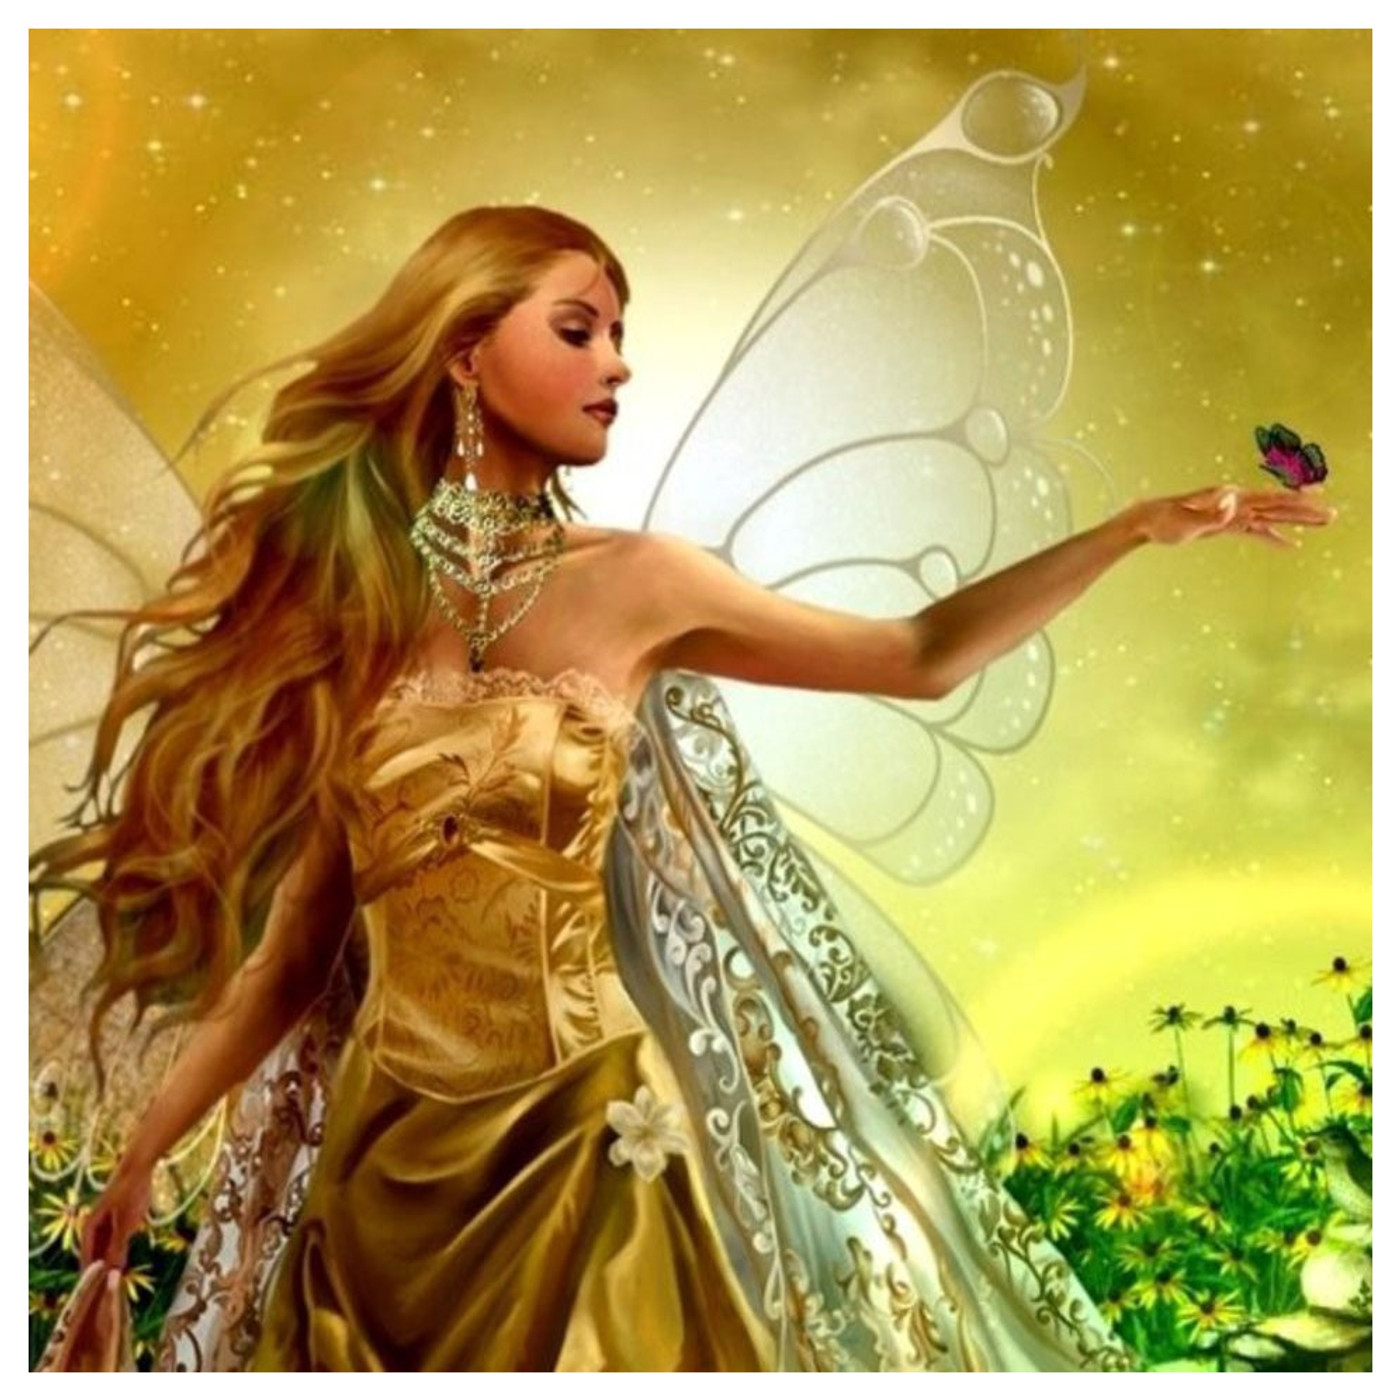 Fairy Wishing Spell! Summon Spirits of Light to Grant Your Wishes!